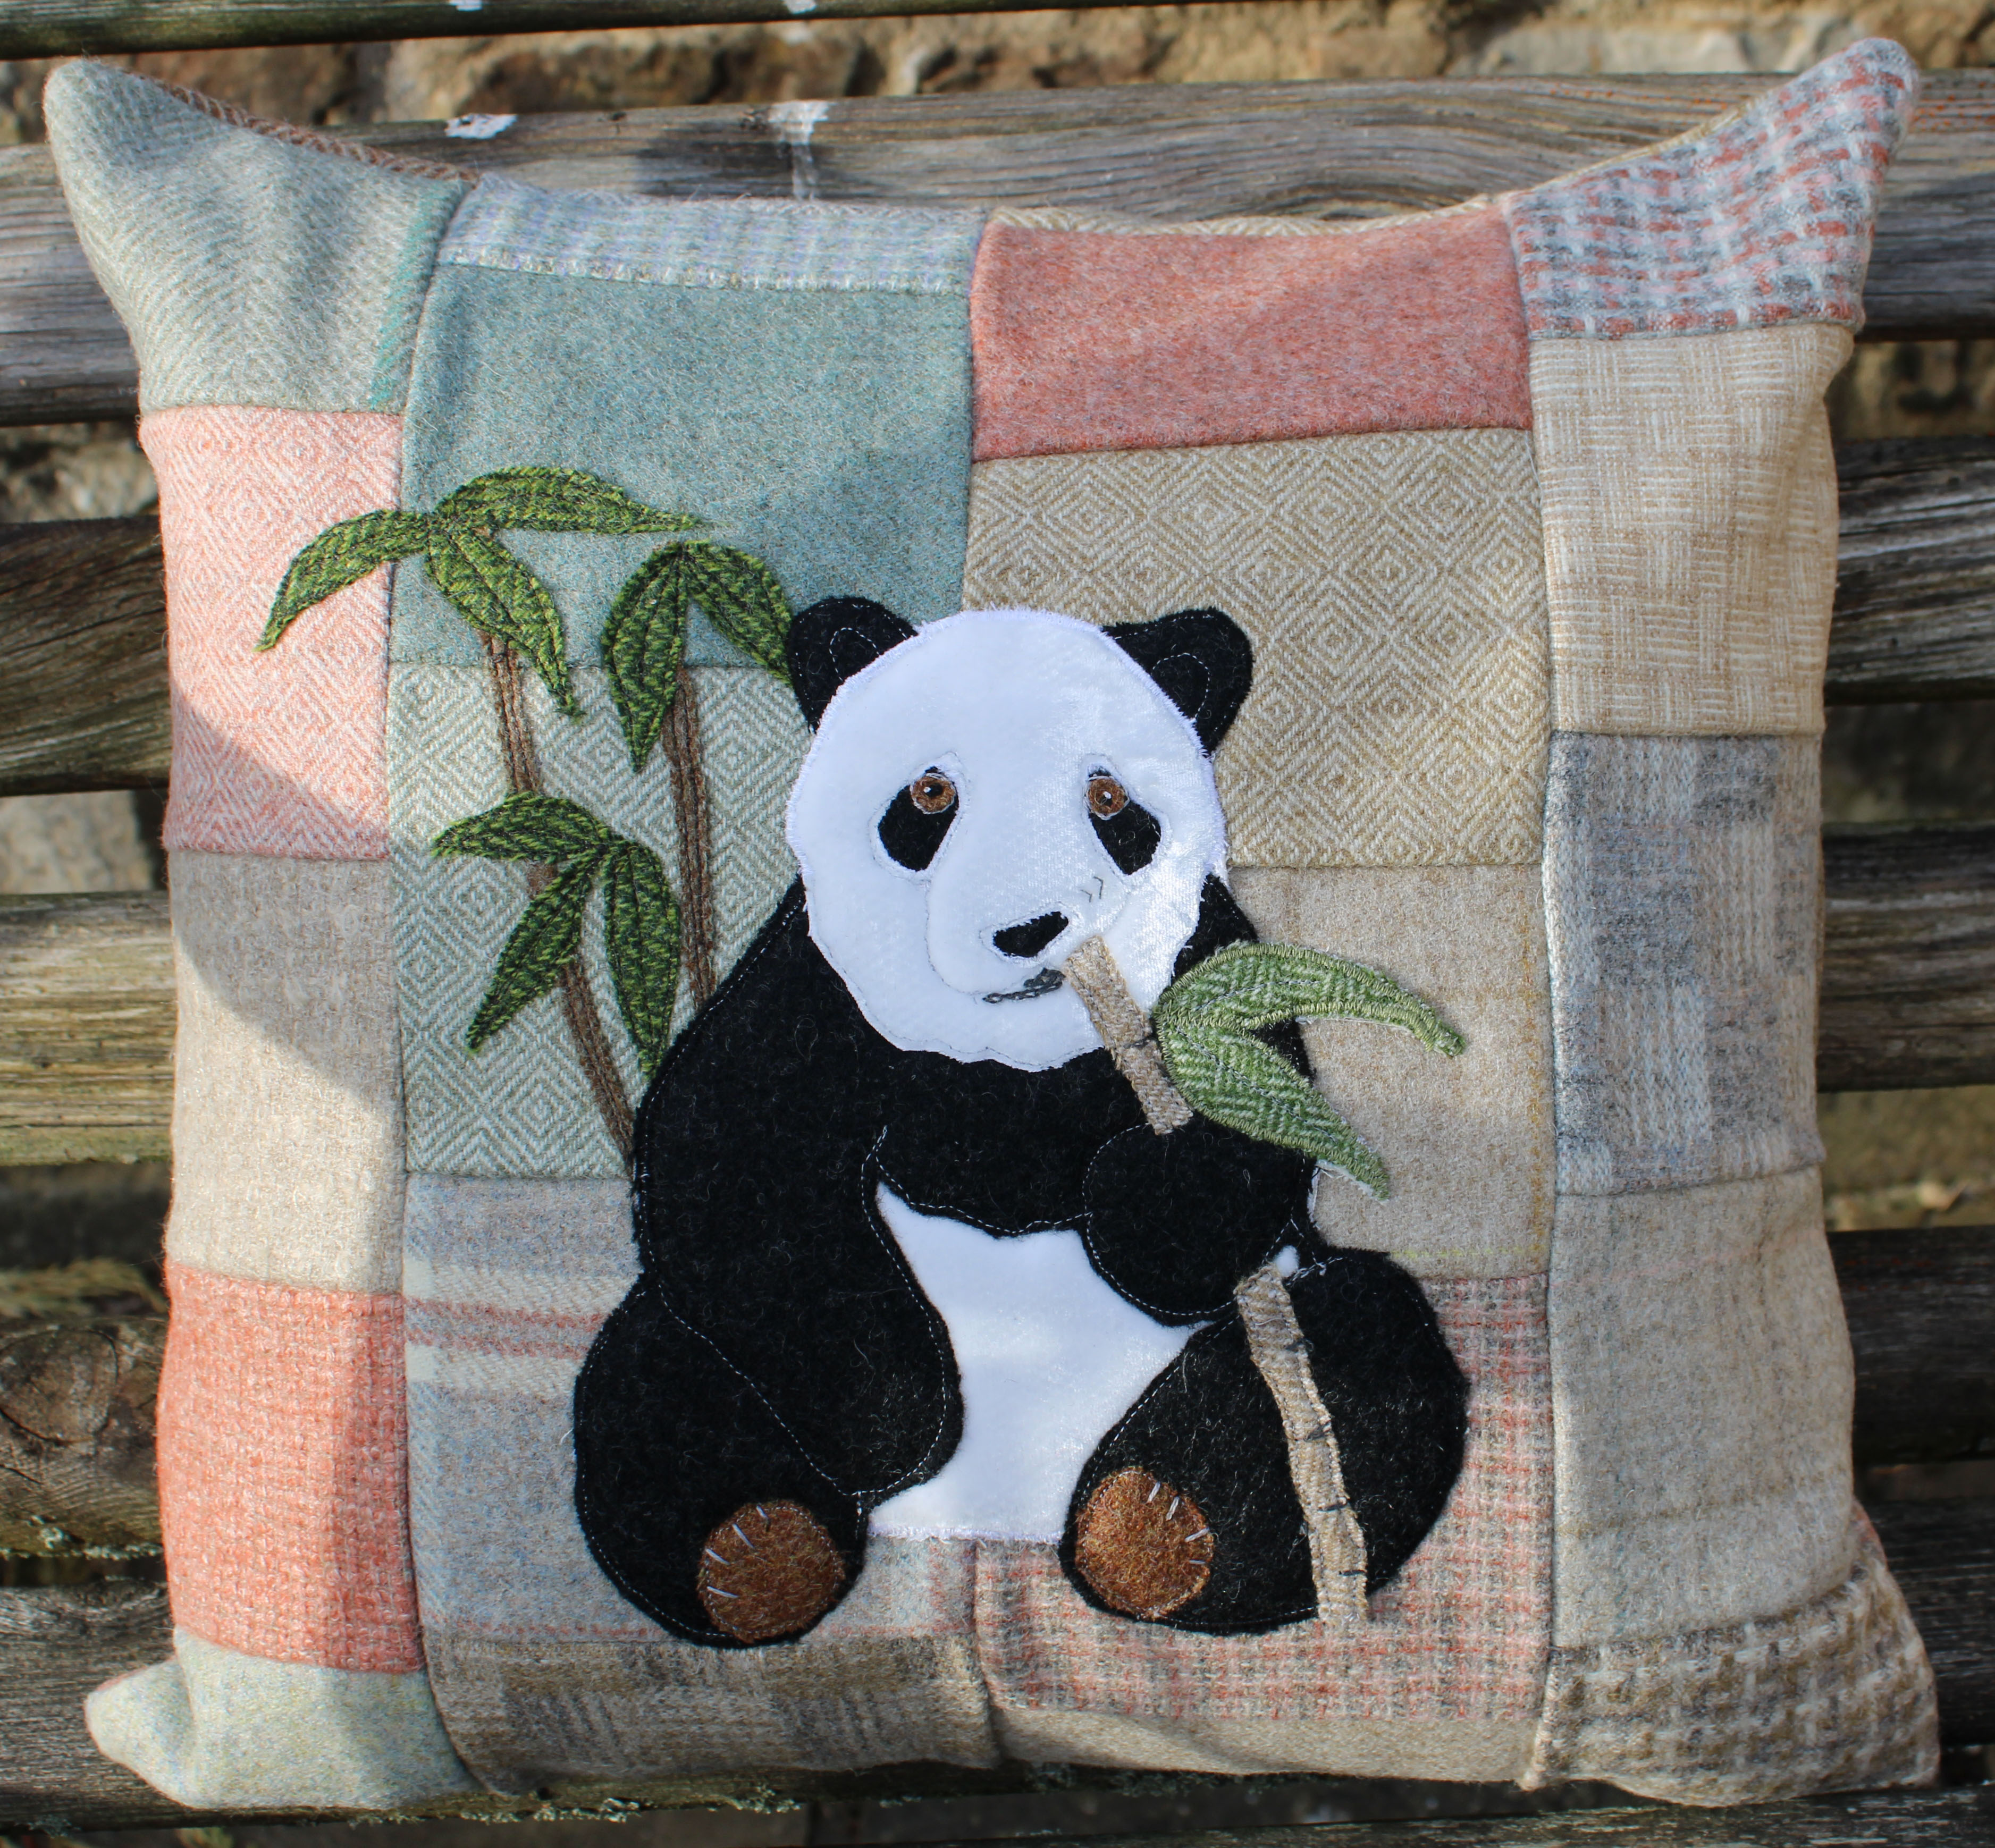 Meal for One Panda cushion